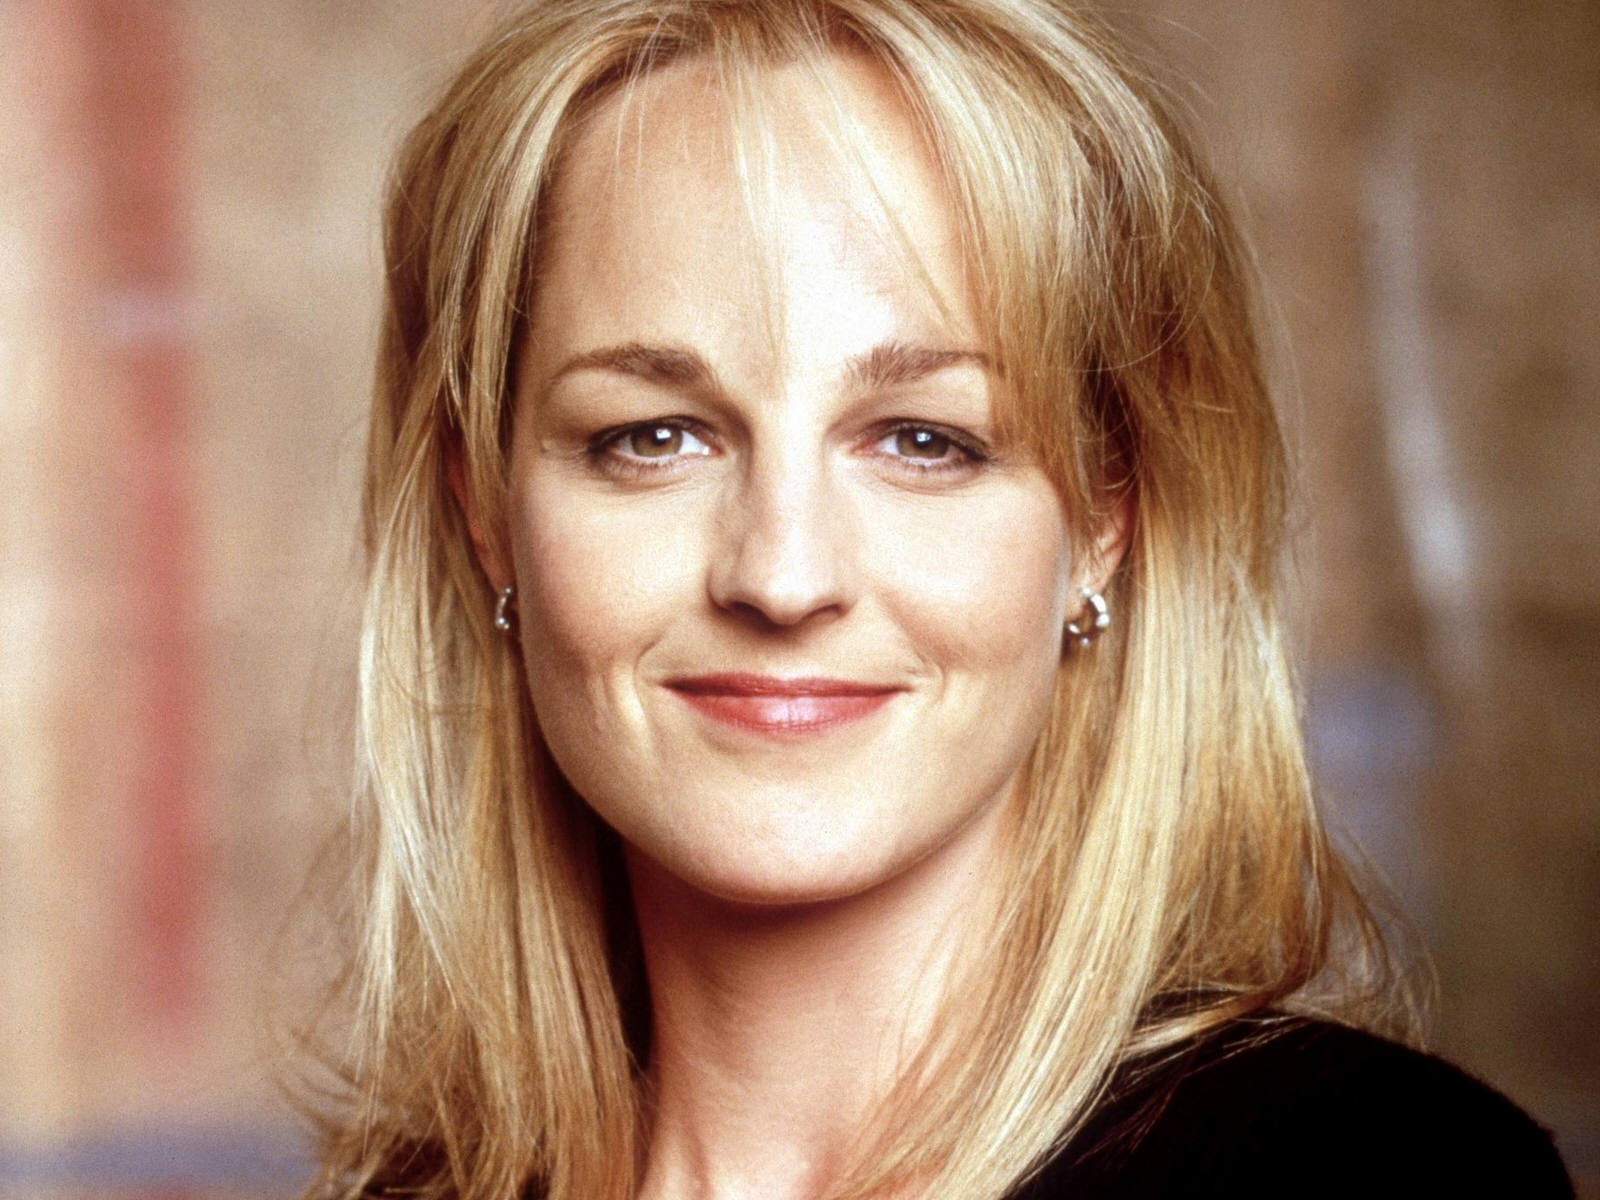 helen hunt net worth